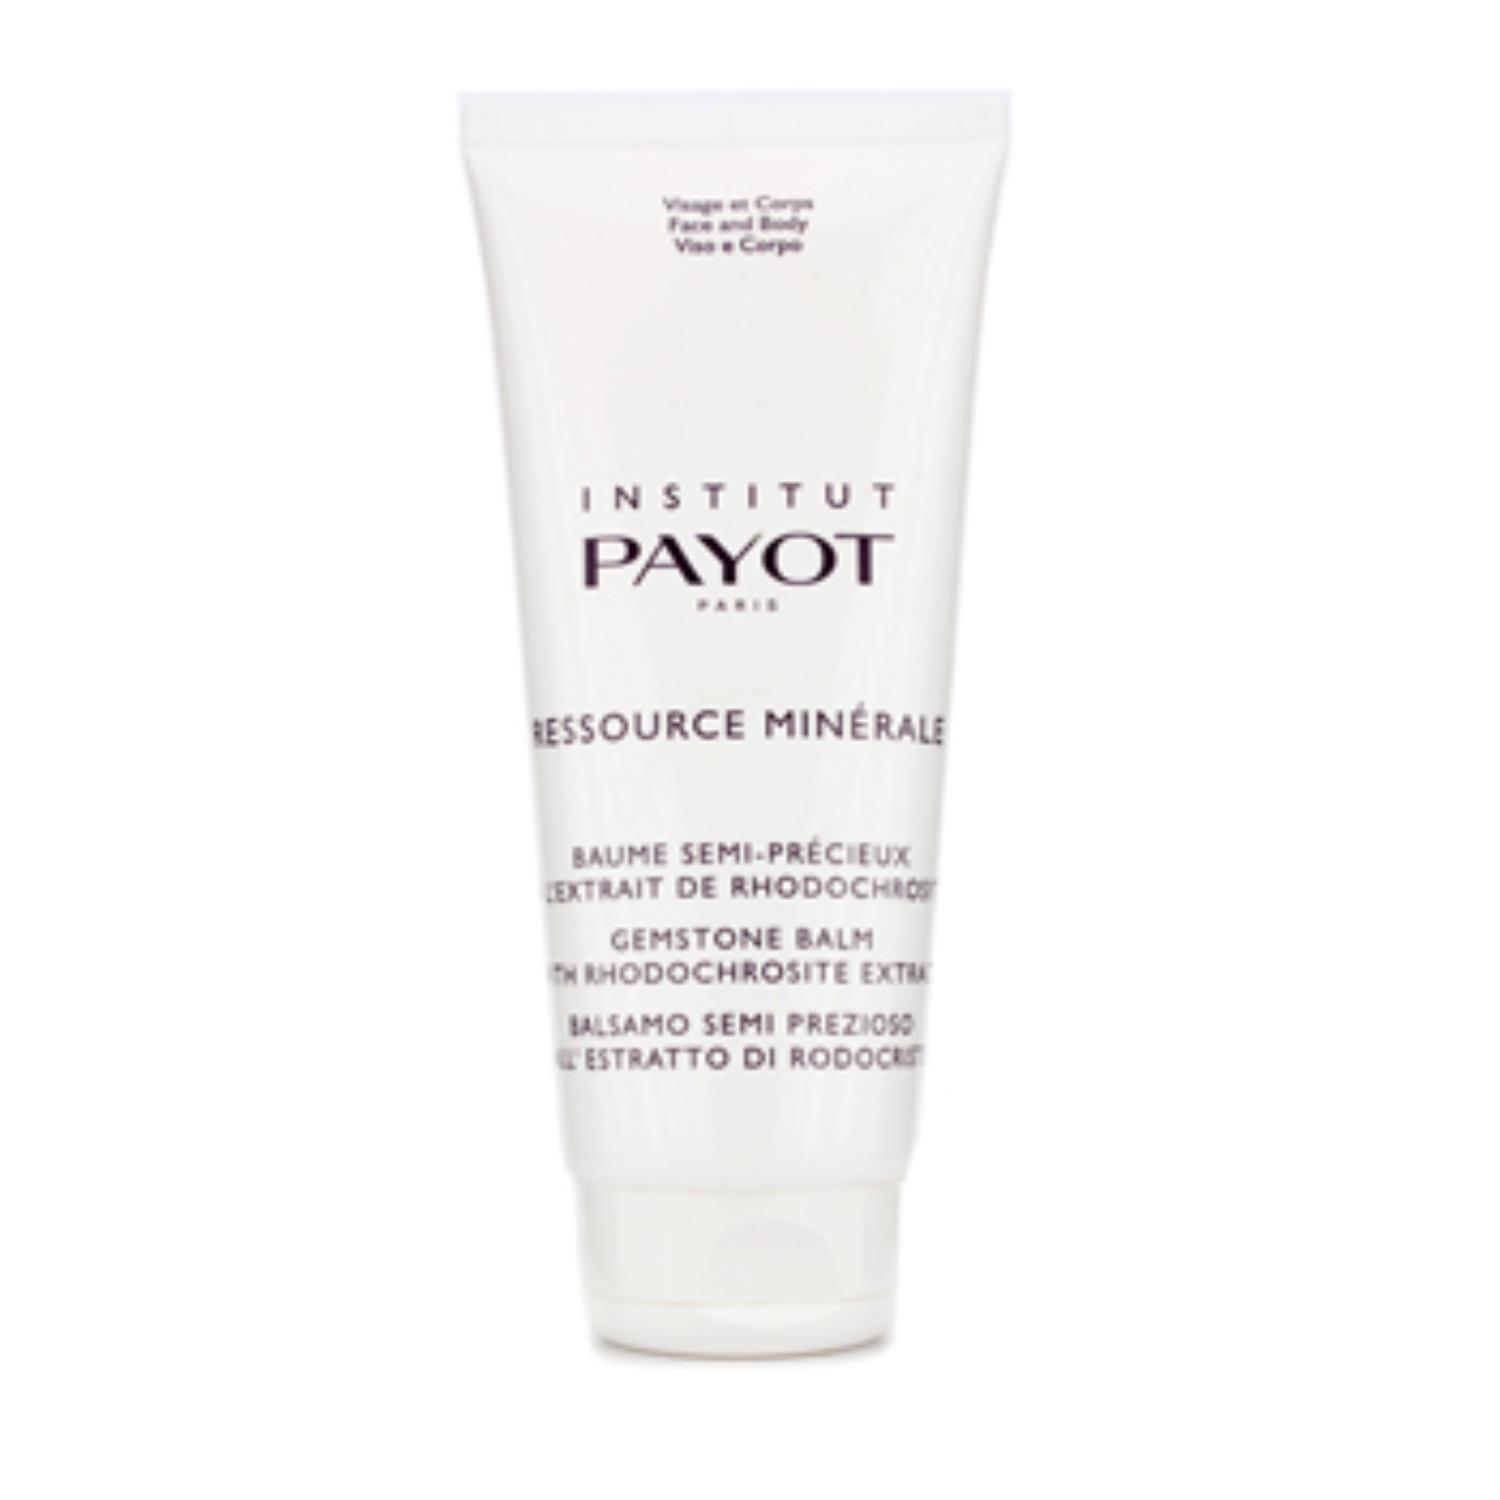 Payot rhodochrosite essence moisturizing body cream (salon size) 200 ml